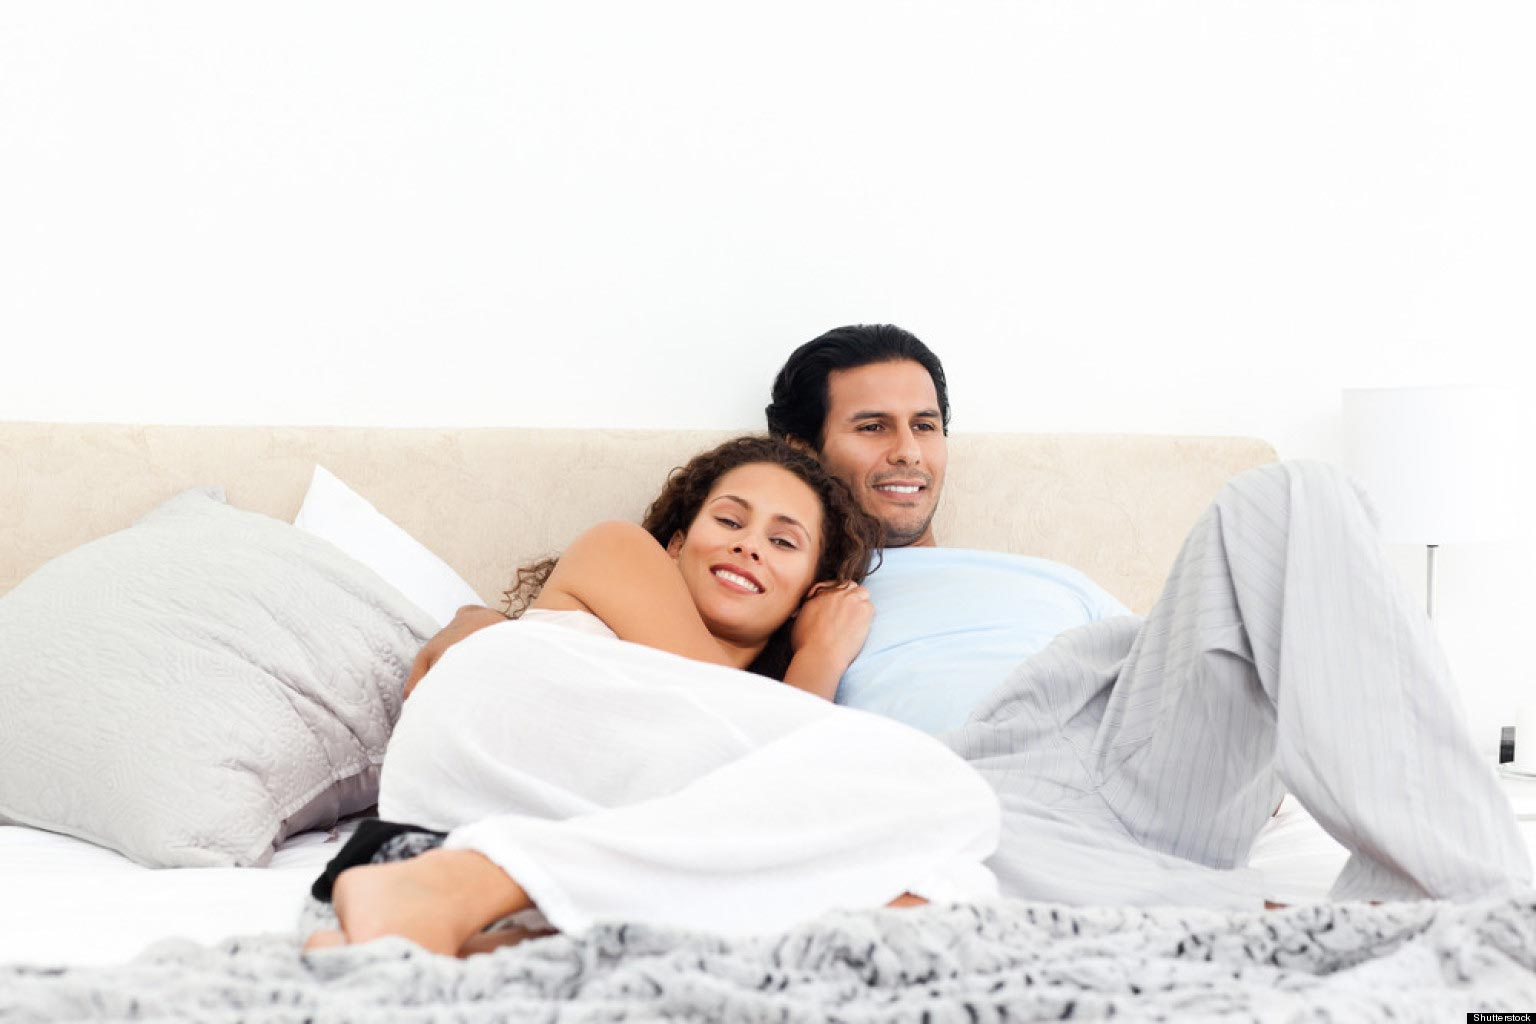 Men And Women In Bedroom Shocking Facts 6 Things Women Wish Men Knew About Sex The Trent